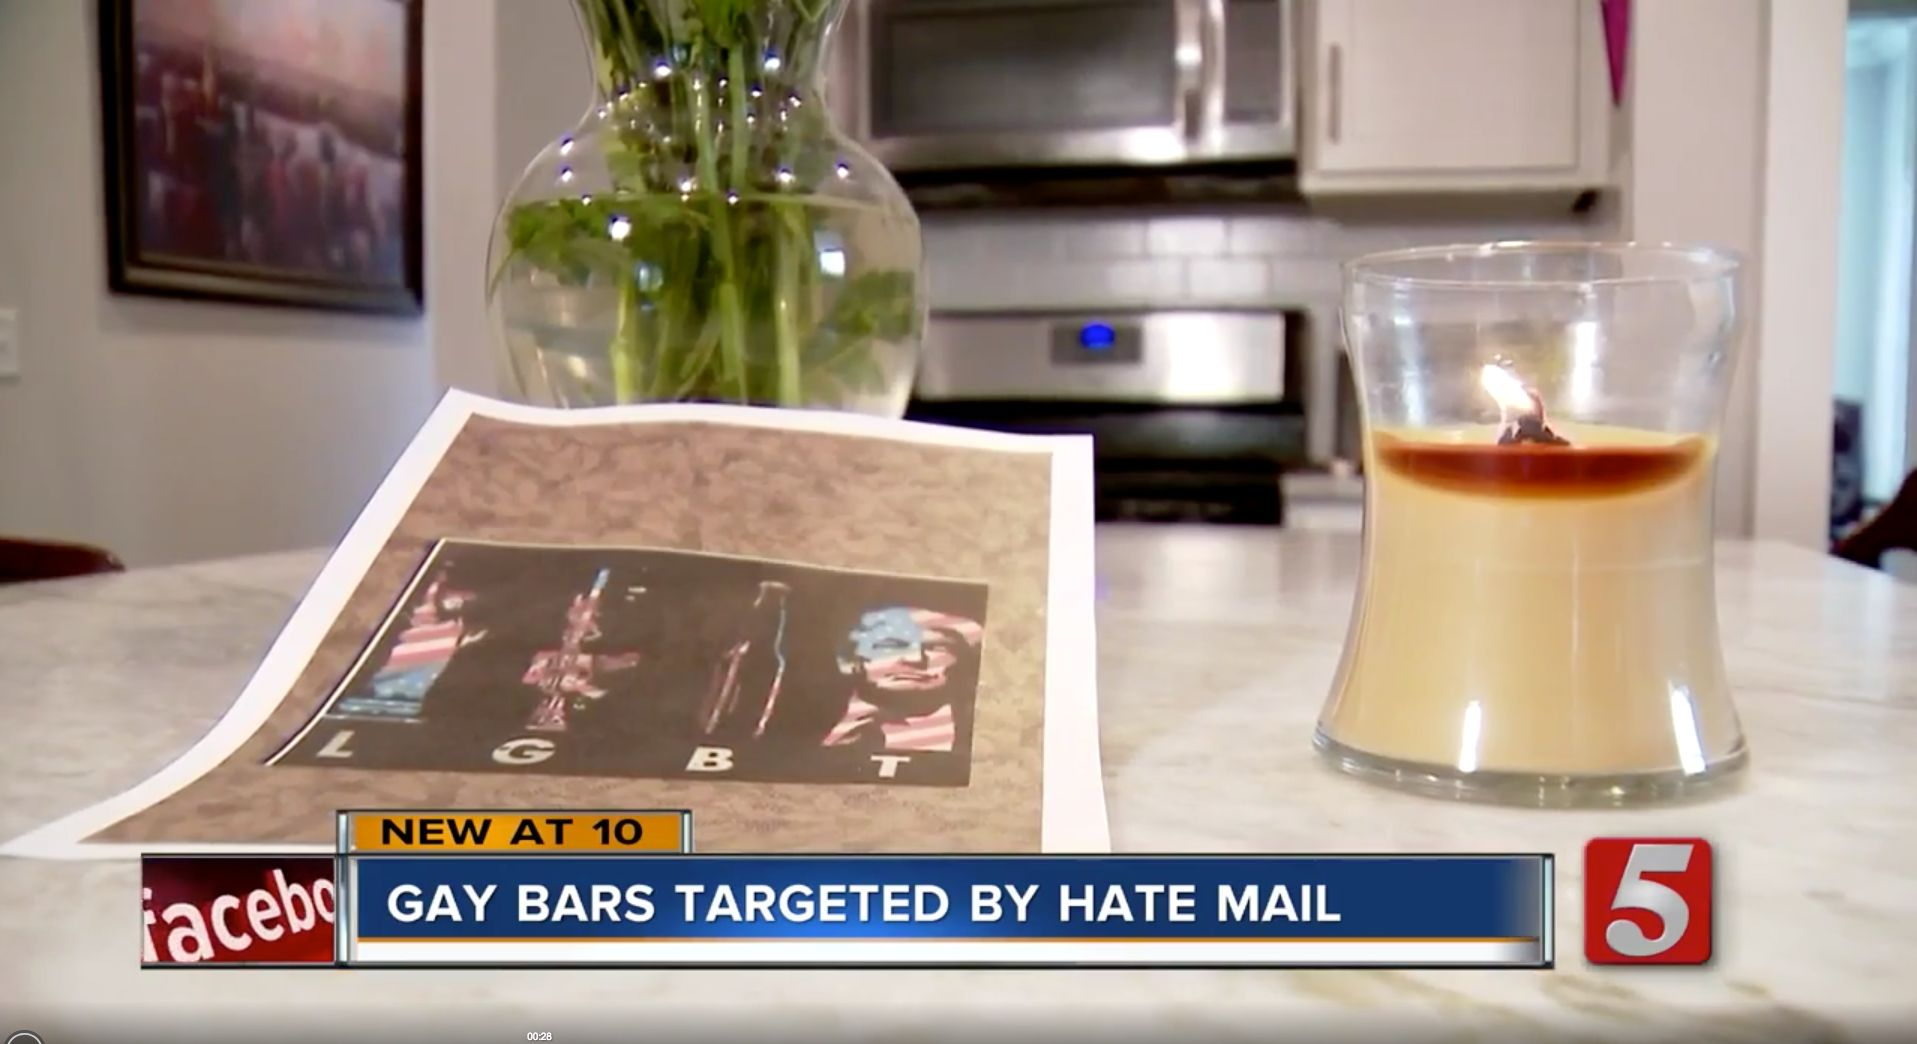 At least four gay bars in Nashville reportedly received pro-Trump, threatening mail last week.